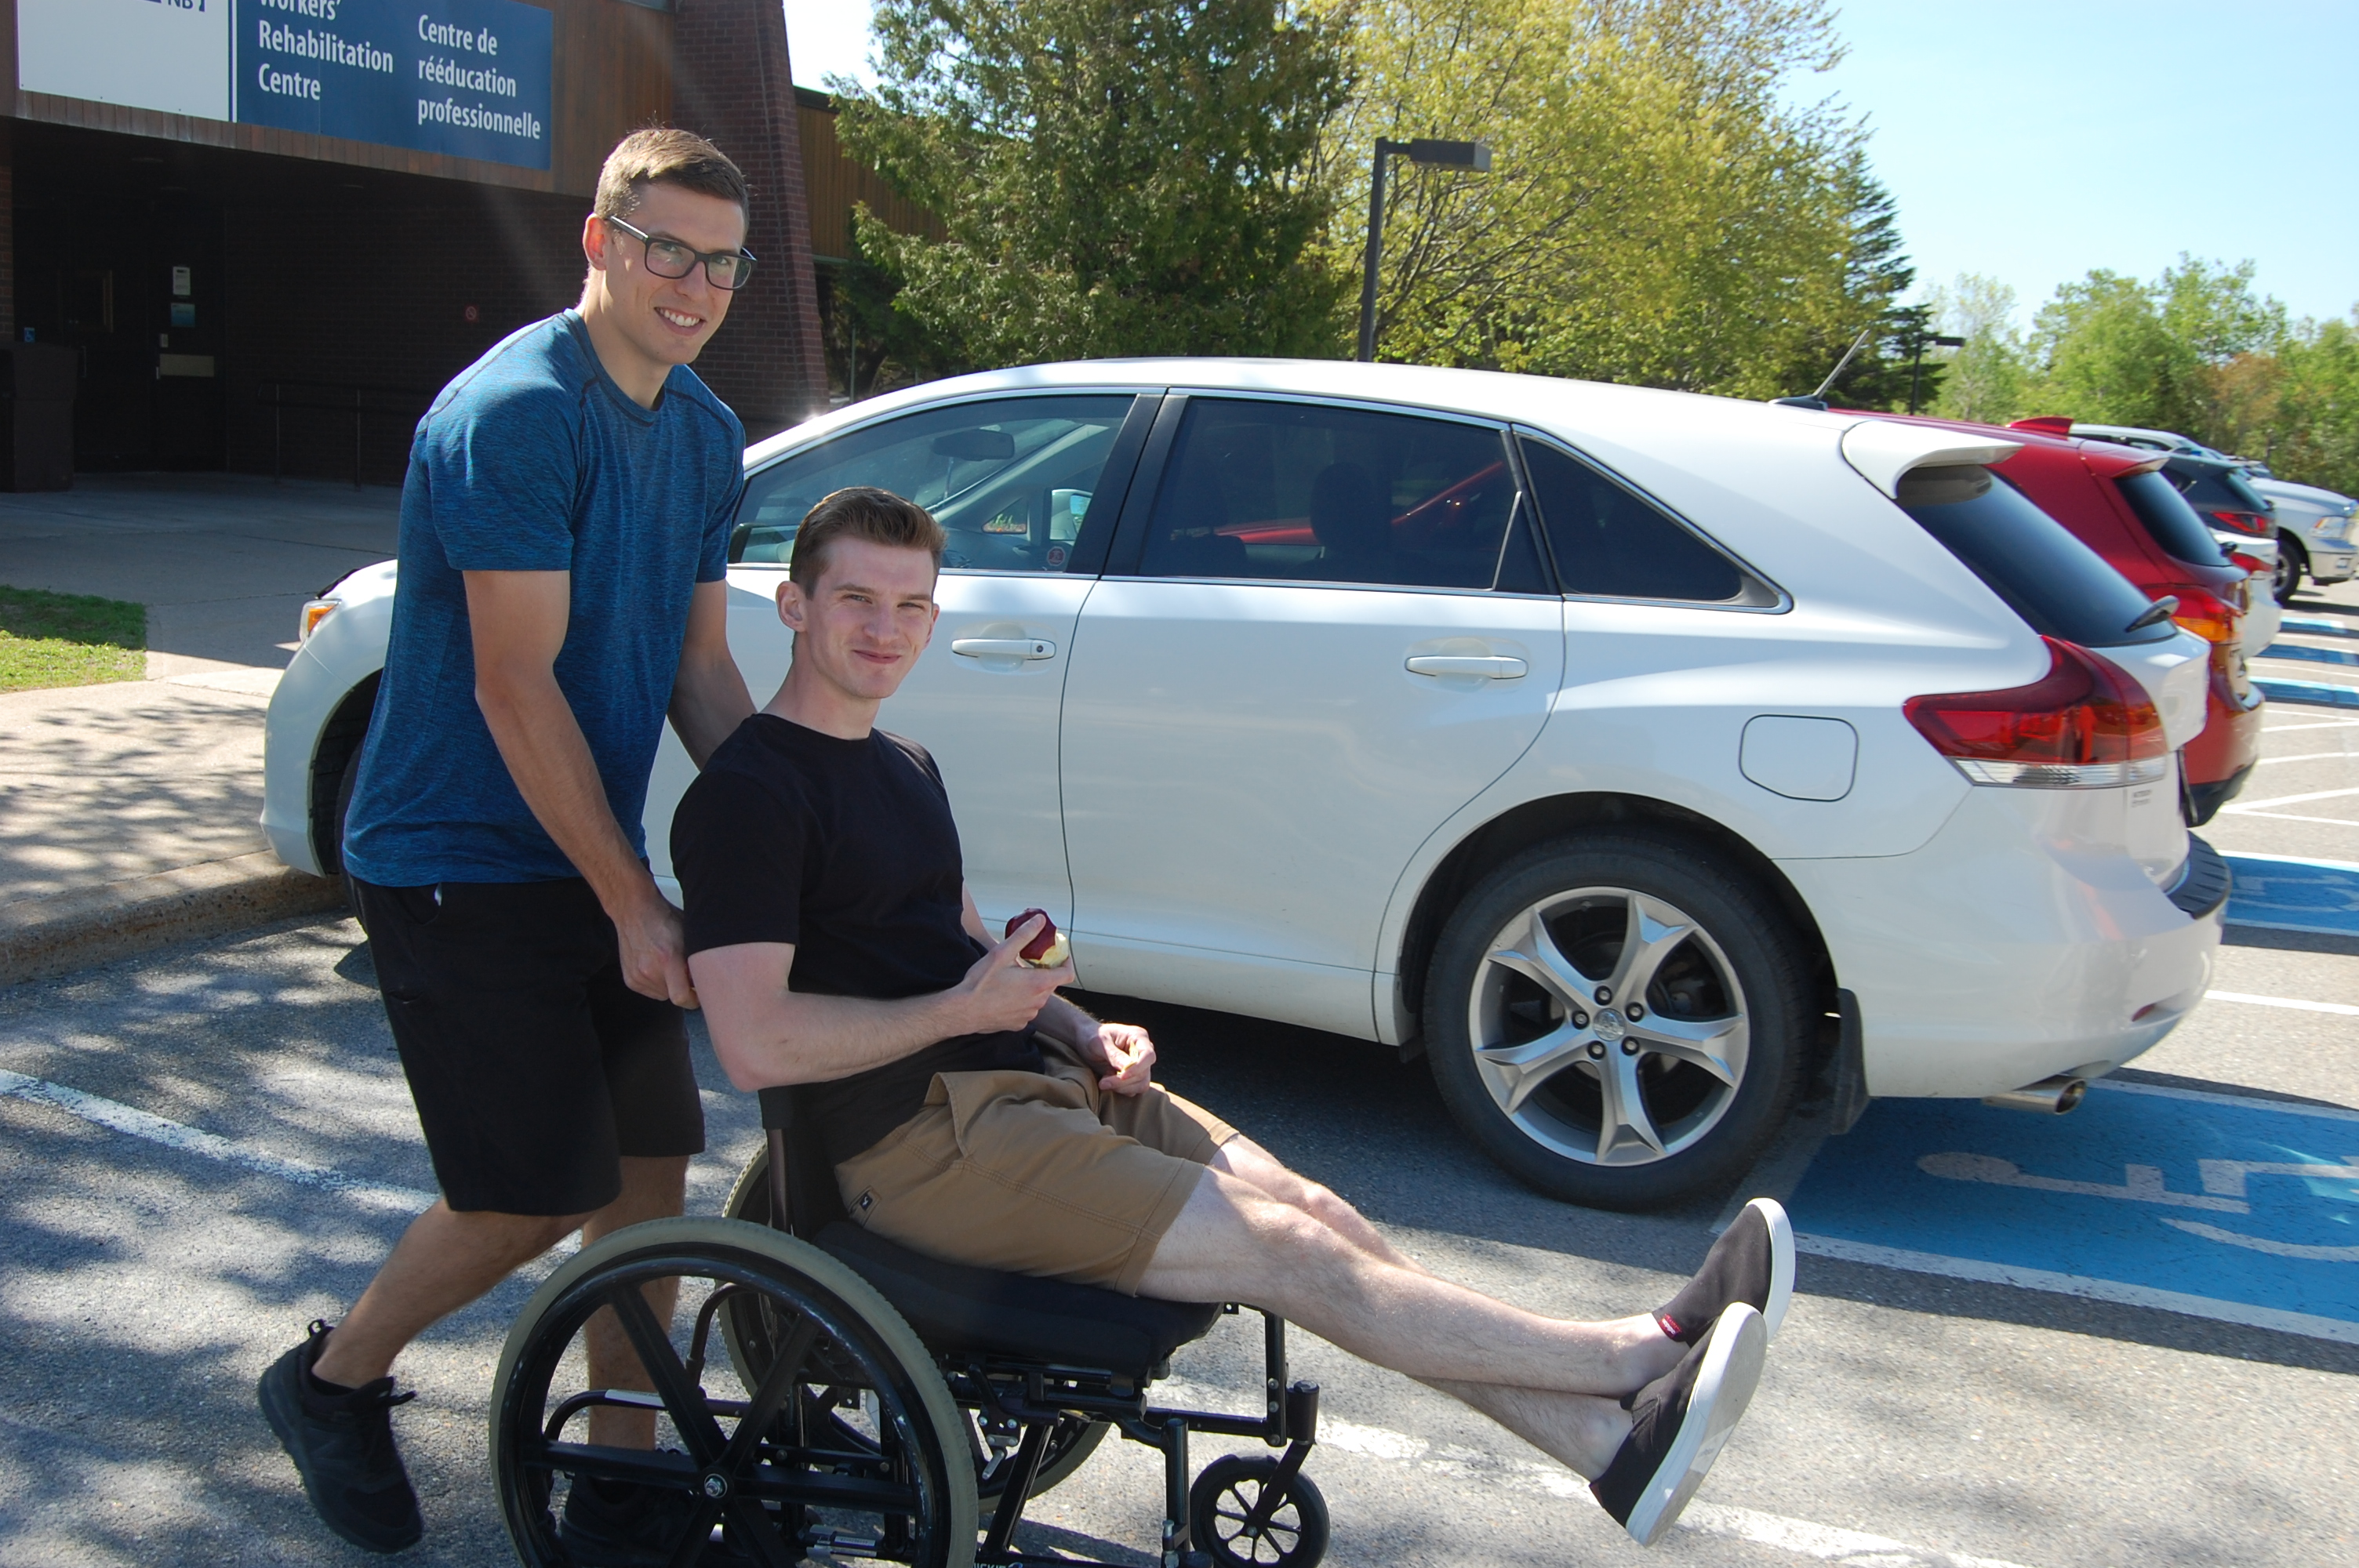 WorkSafeNB occupational therapist Andy West helps summer student Brandon Sloot navigate his wheelchair around WorkSafeNB's Rehabilitation Centre in Grand Bay-Westfield.